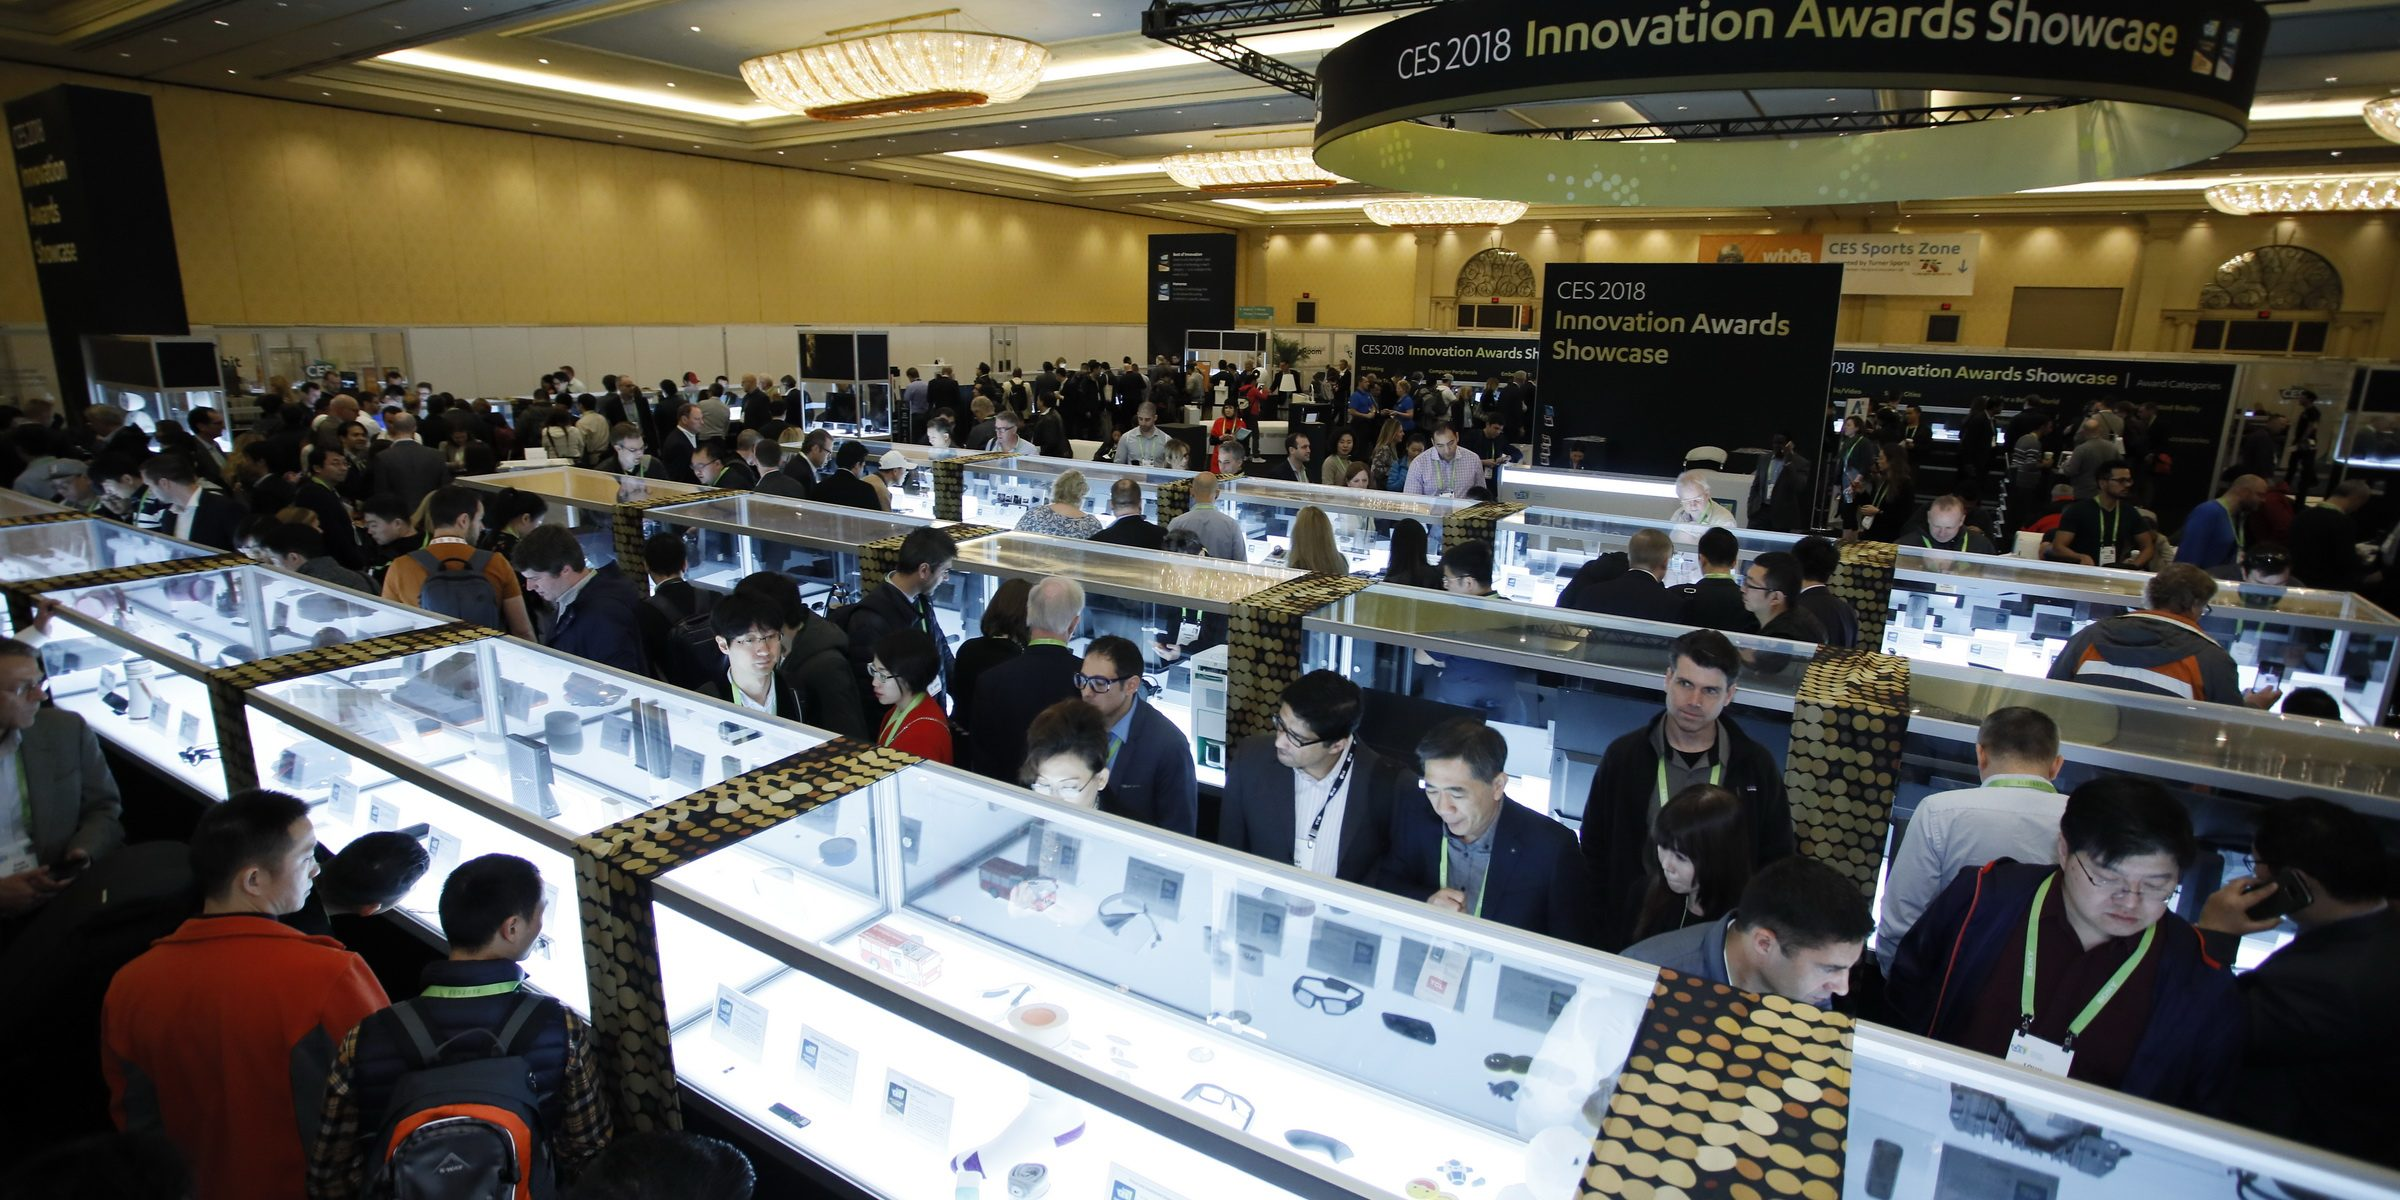 Unistellar at CES 2019: World's Most Powerful Consumer